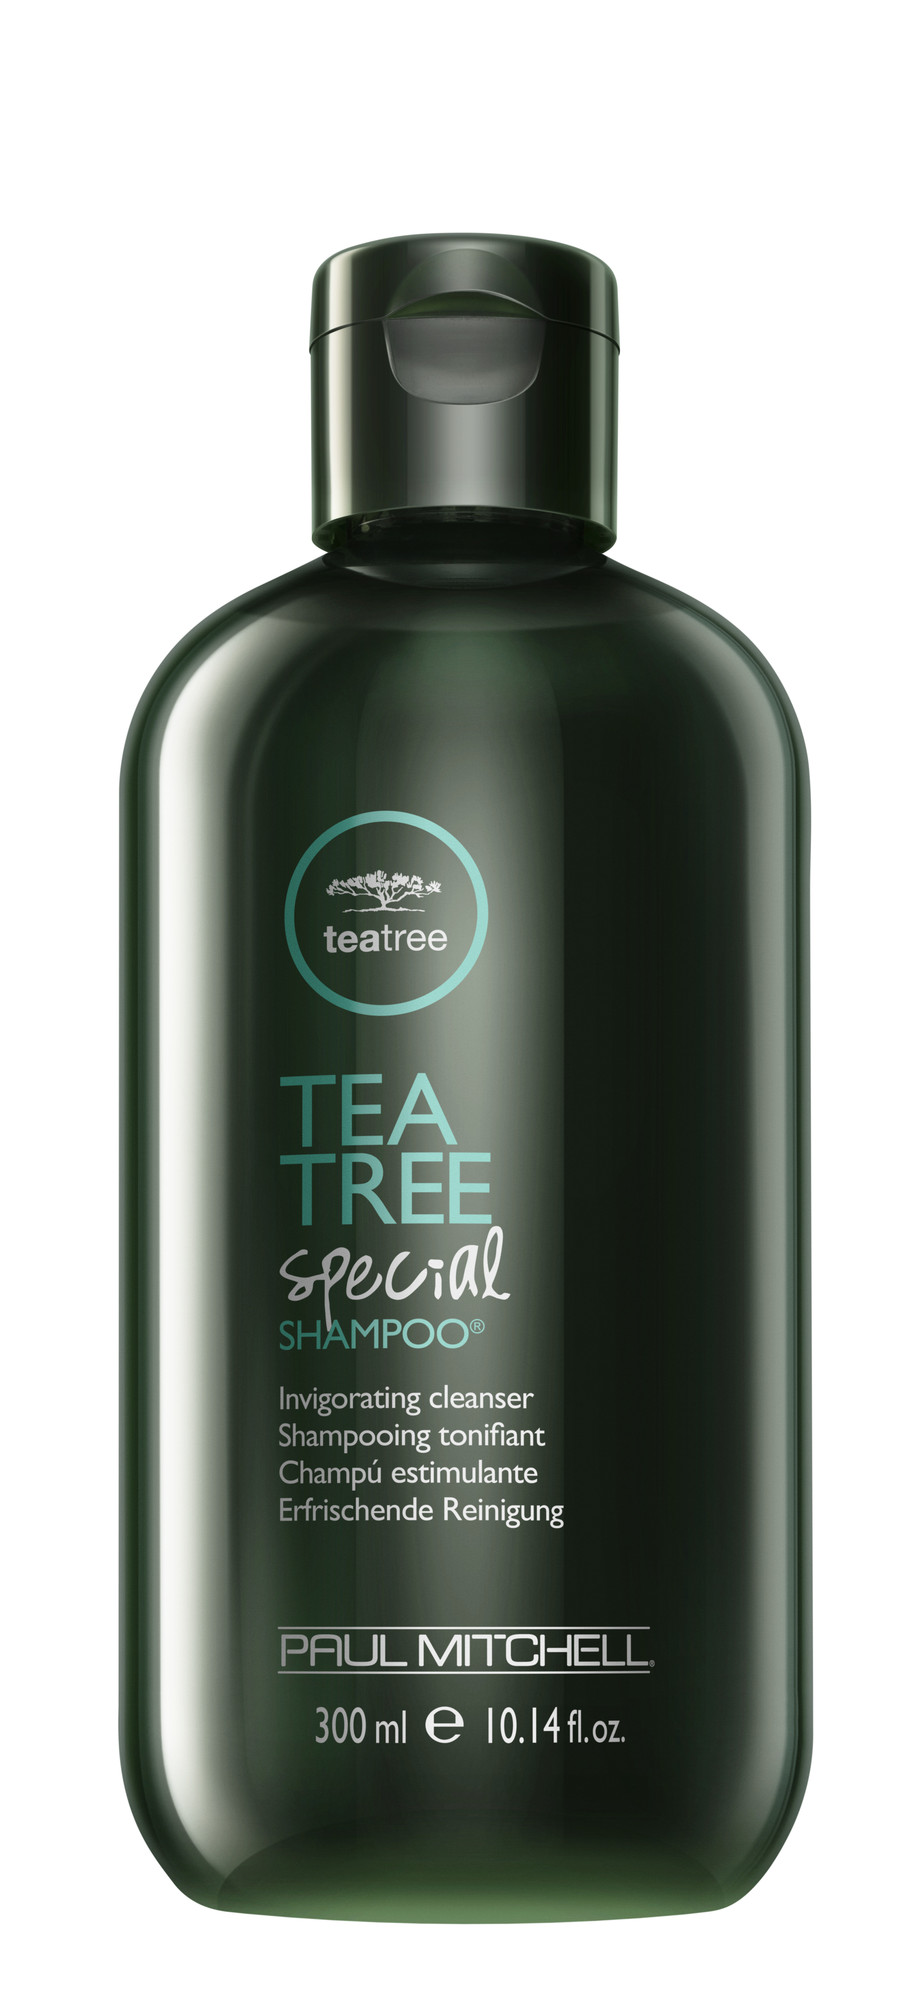 TEA TREE SPECIAL SHAMPOO®